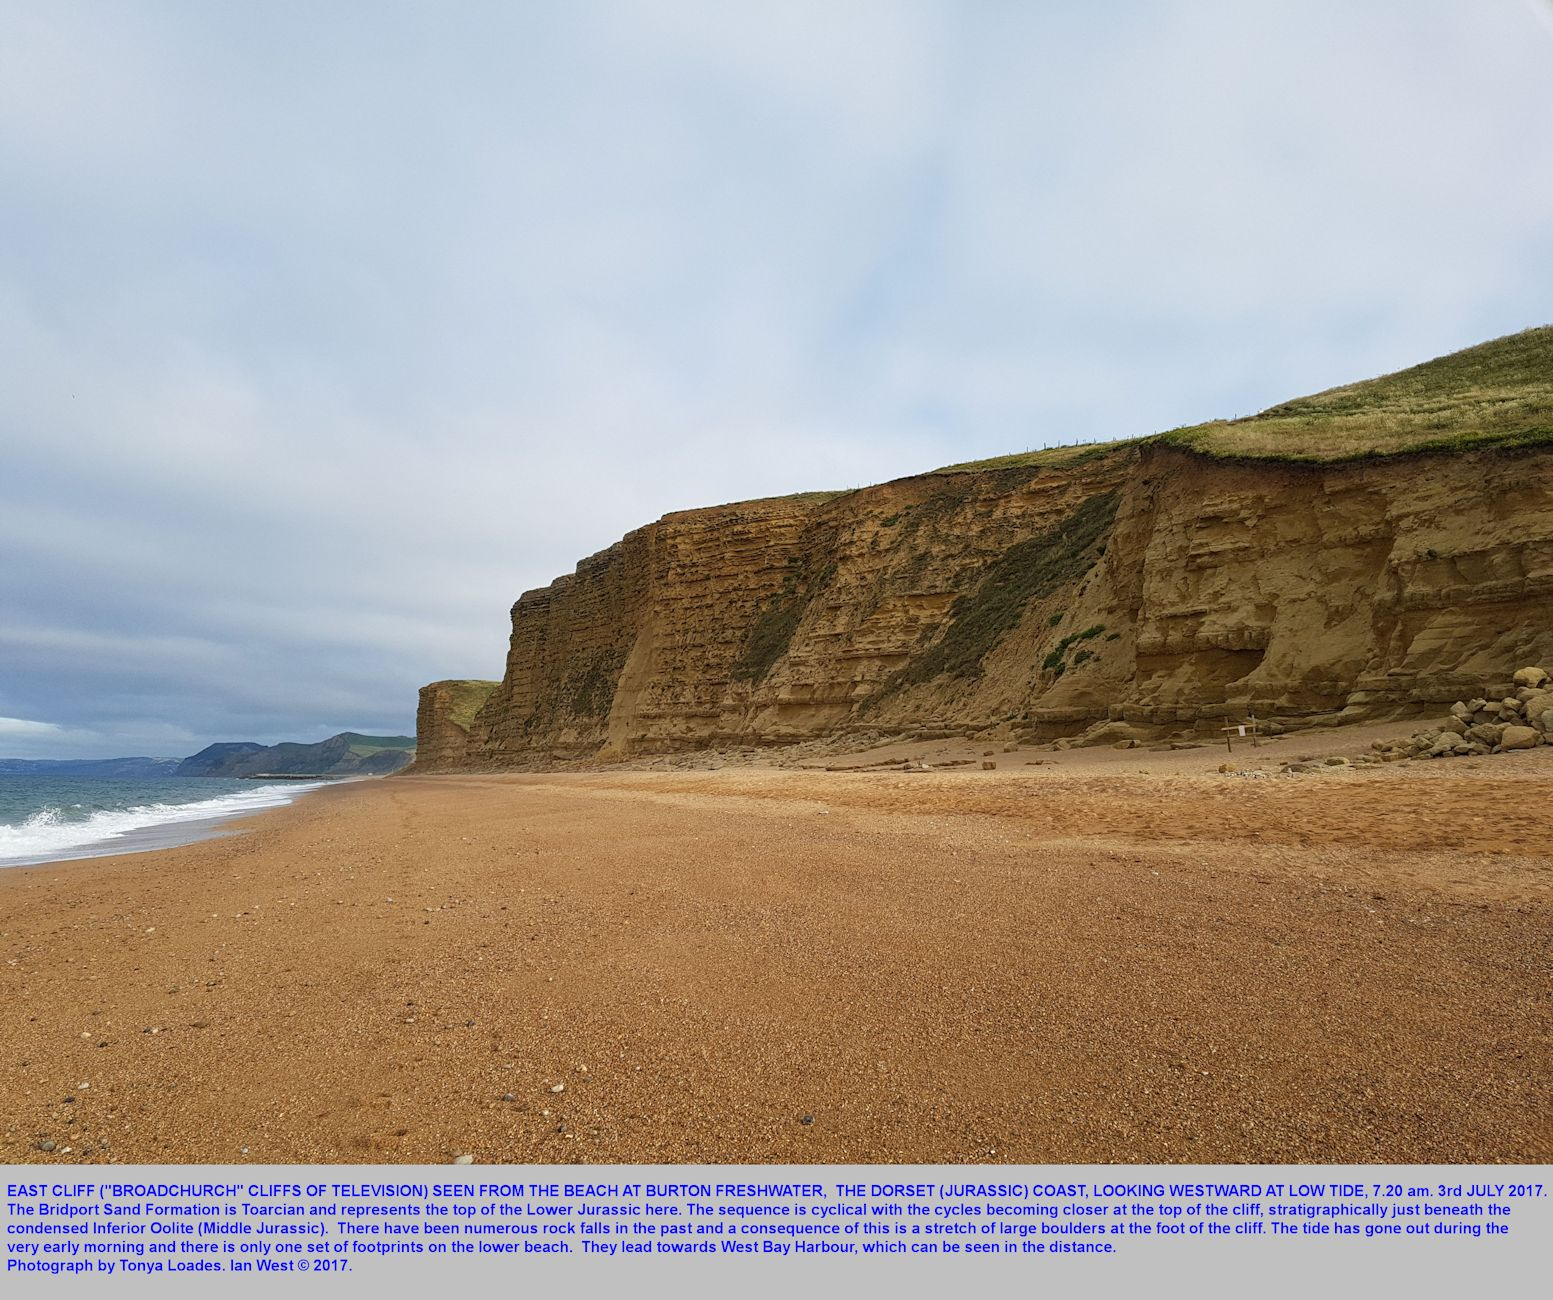 East Cliff, West Bay, Dorset, as seen from Burton Freshwater at low tide in the early morning, photograph by Tonya Loades